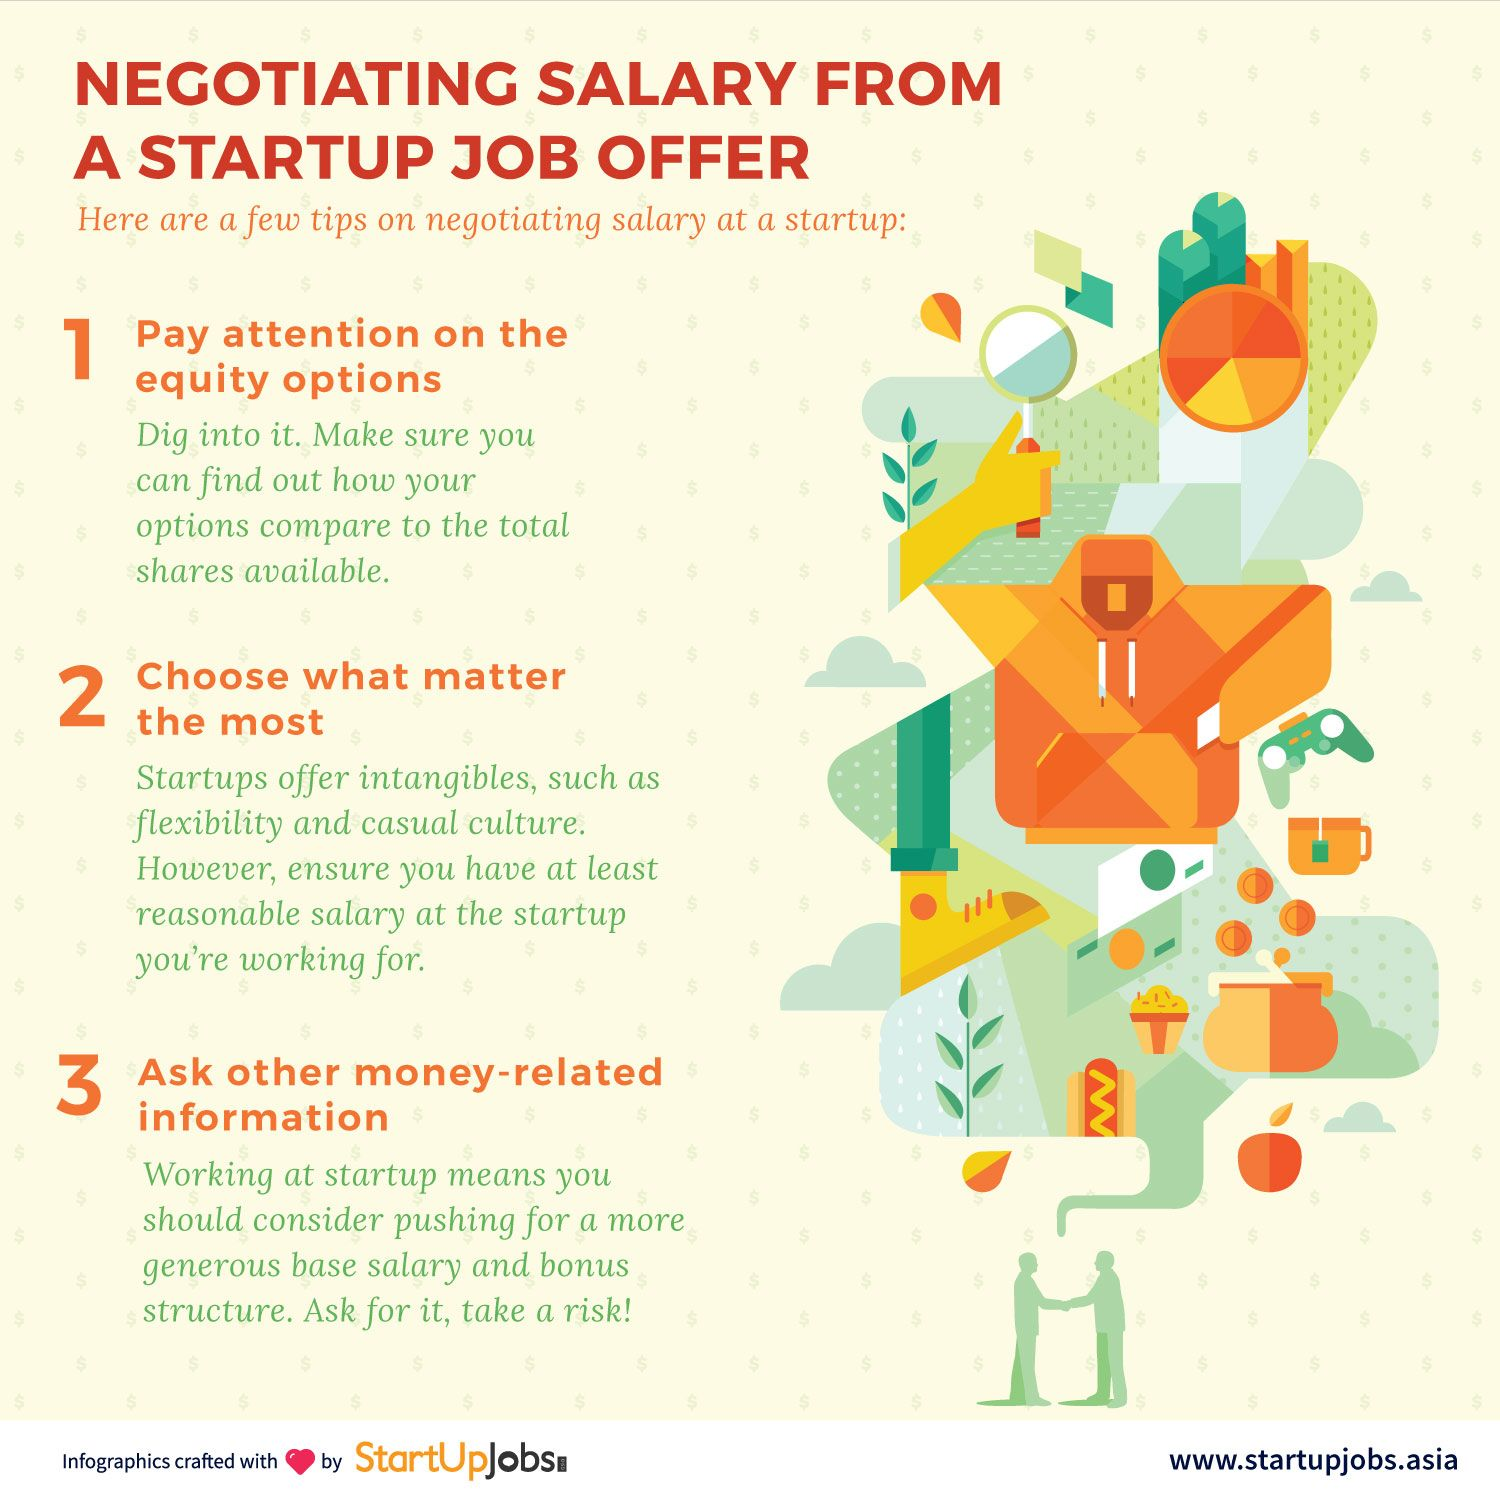 A few tips on negotiating salary at a startup